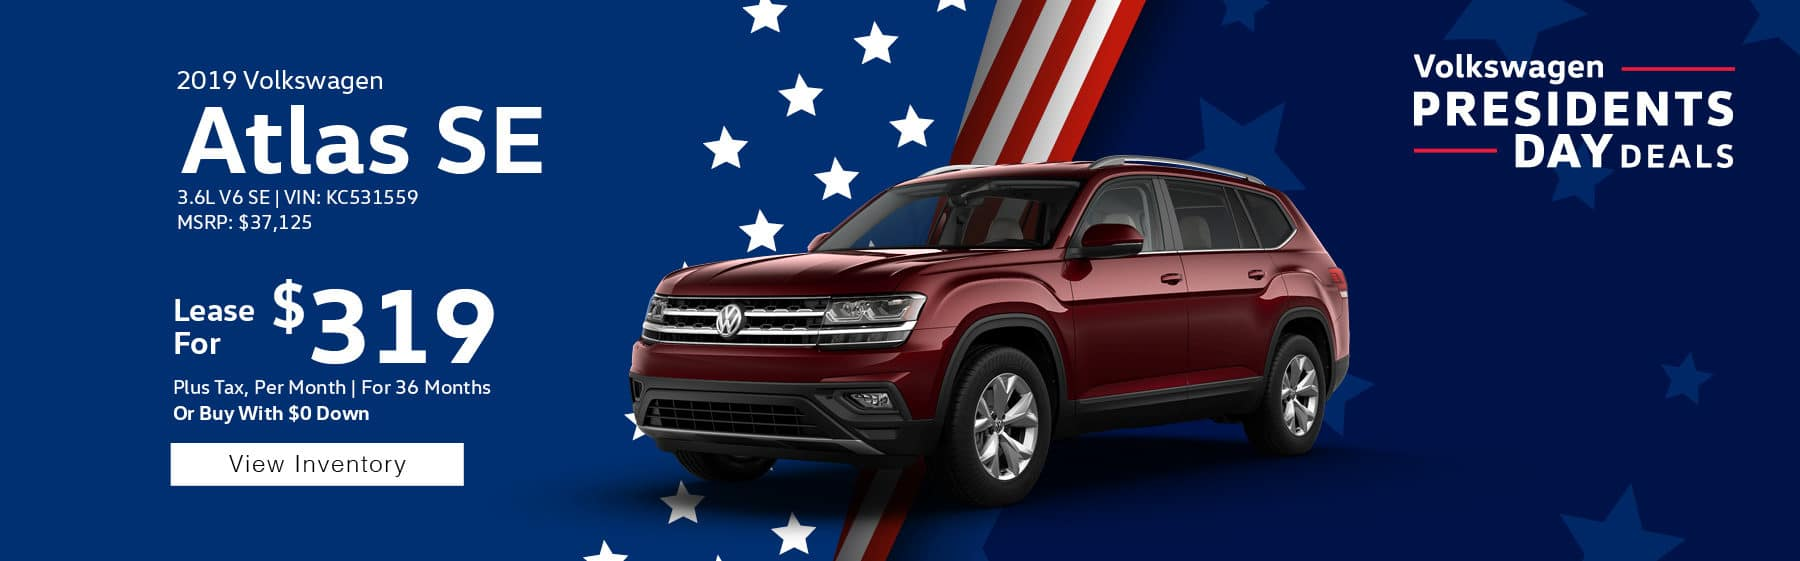 Lease the 2019 Volkswagen Atlas SE V6 for only $319 per month, plus tax for 39 months. $1,895 down payment required